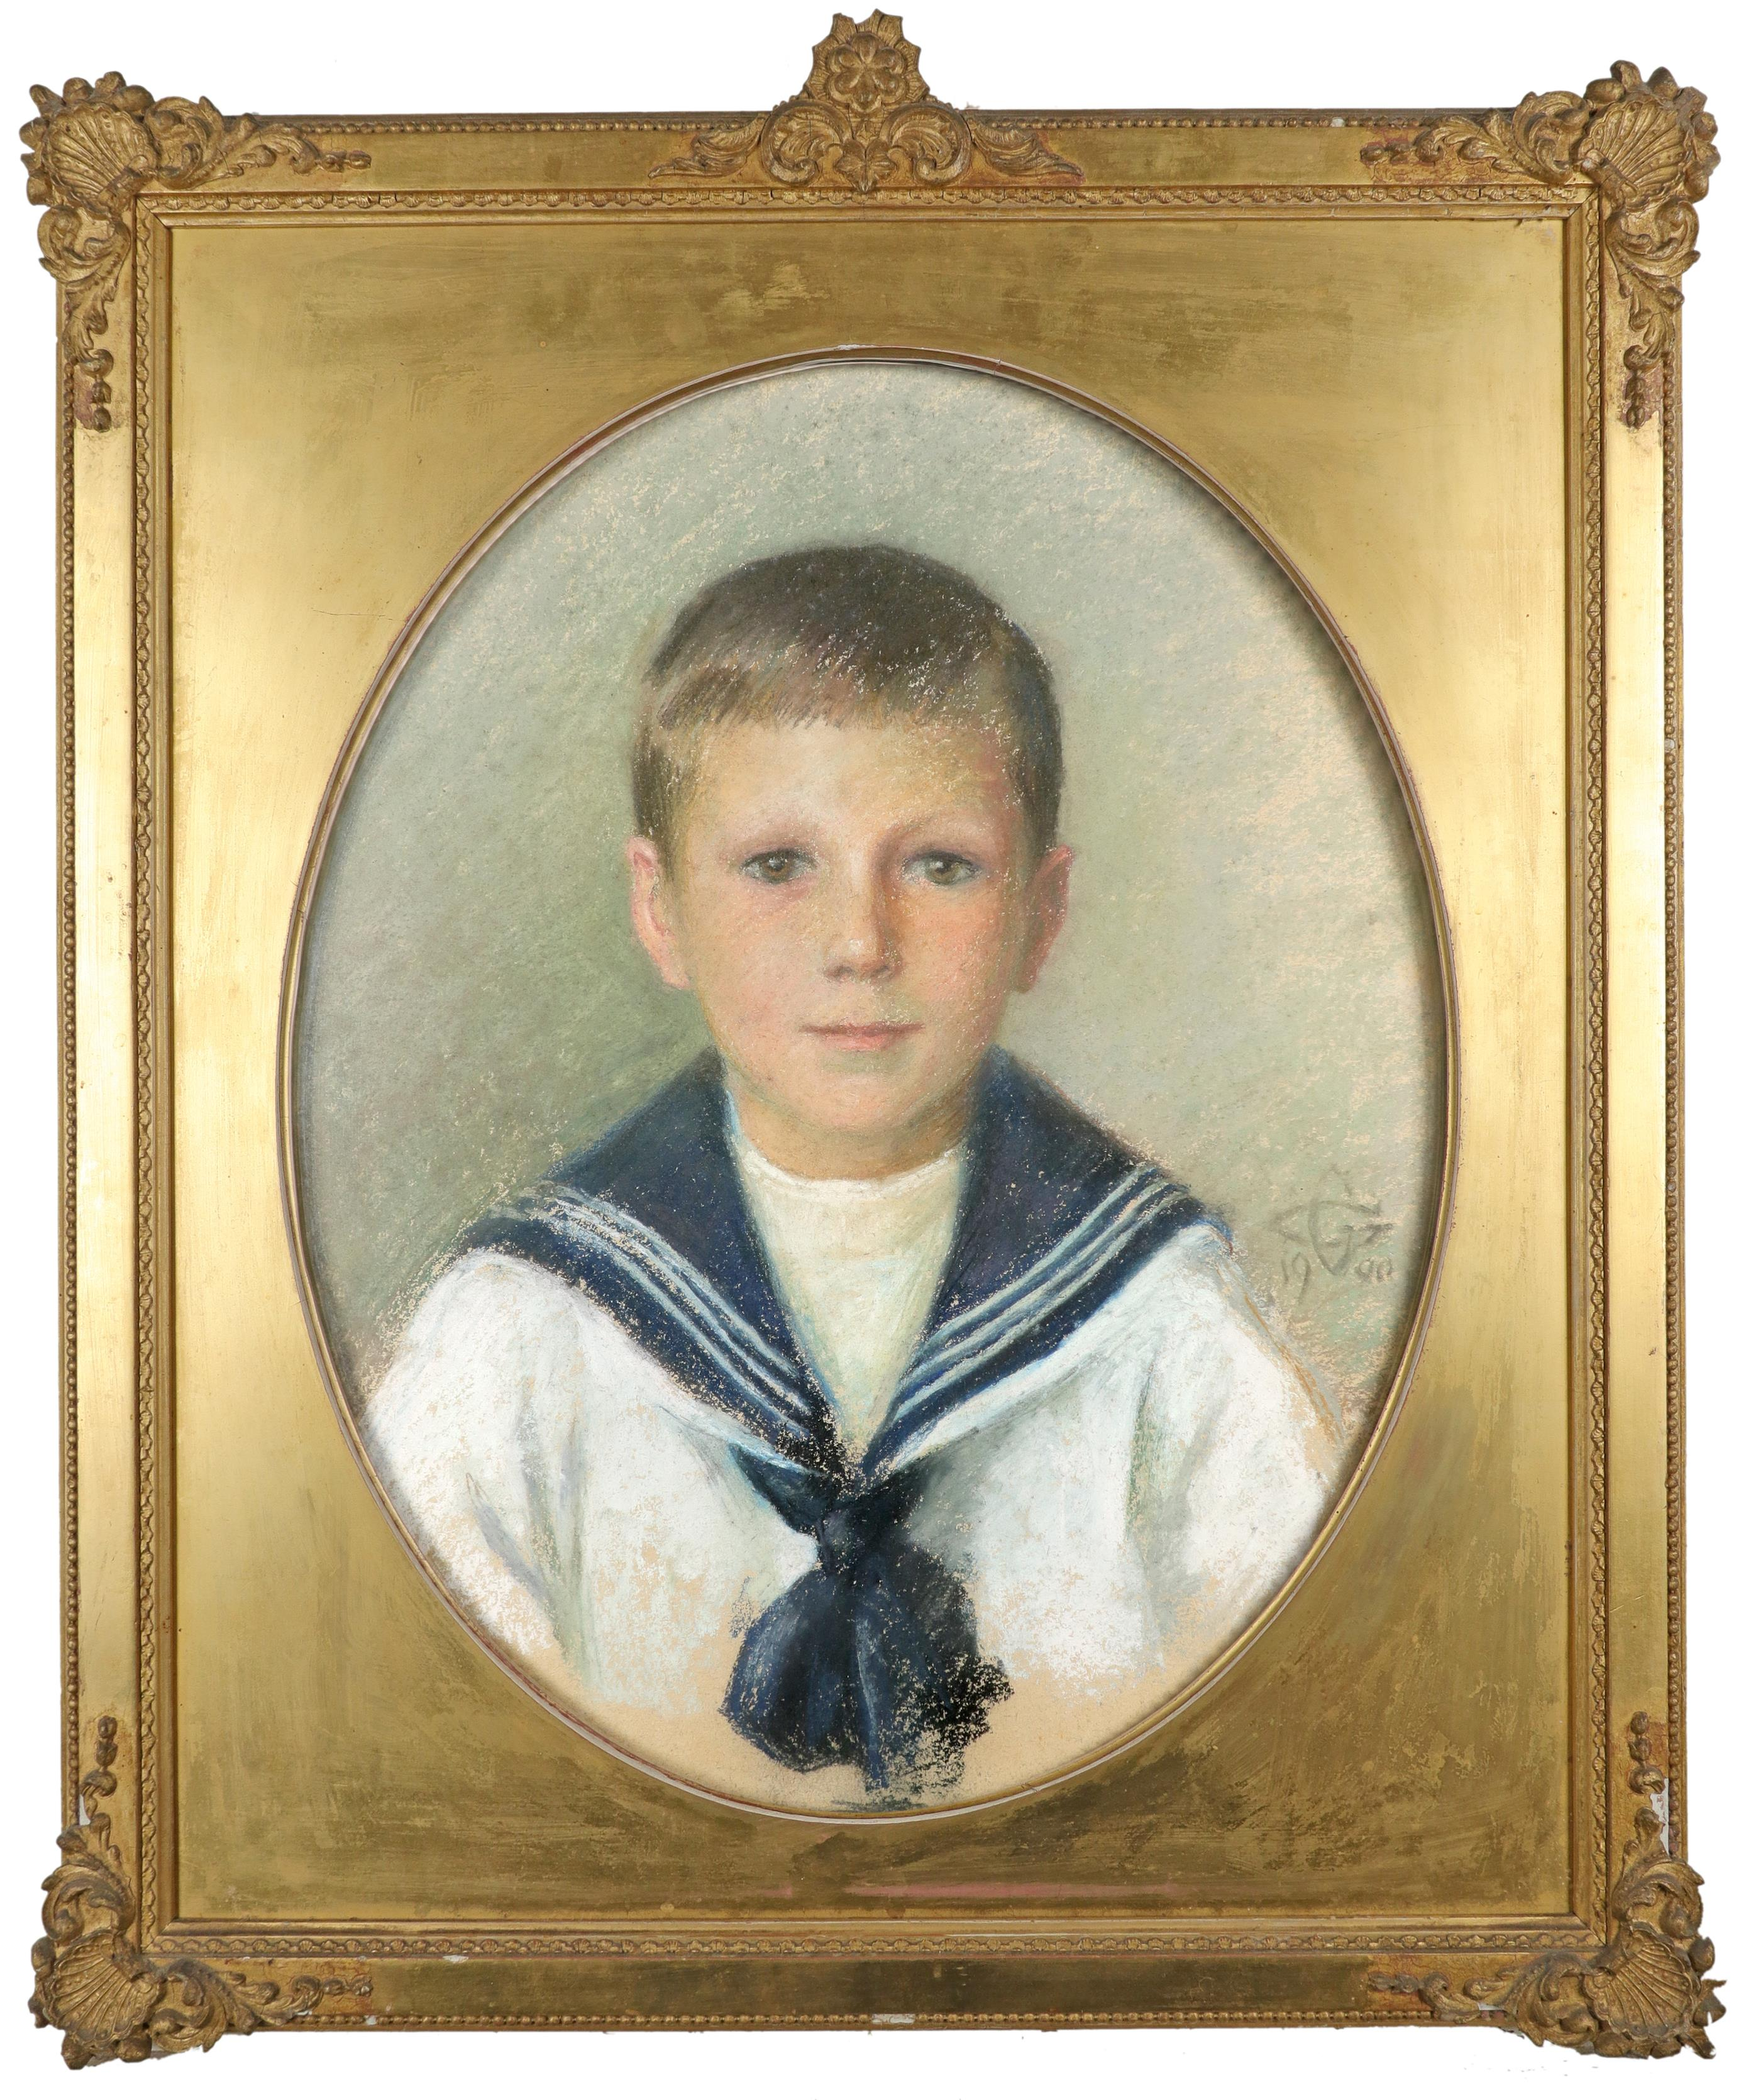 British School 1900 Portrait of a boy in a sailor suit; Portrait of a girl in a blue dress with lace - Image 2 of 6